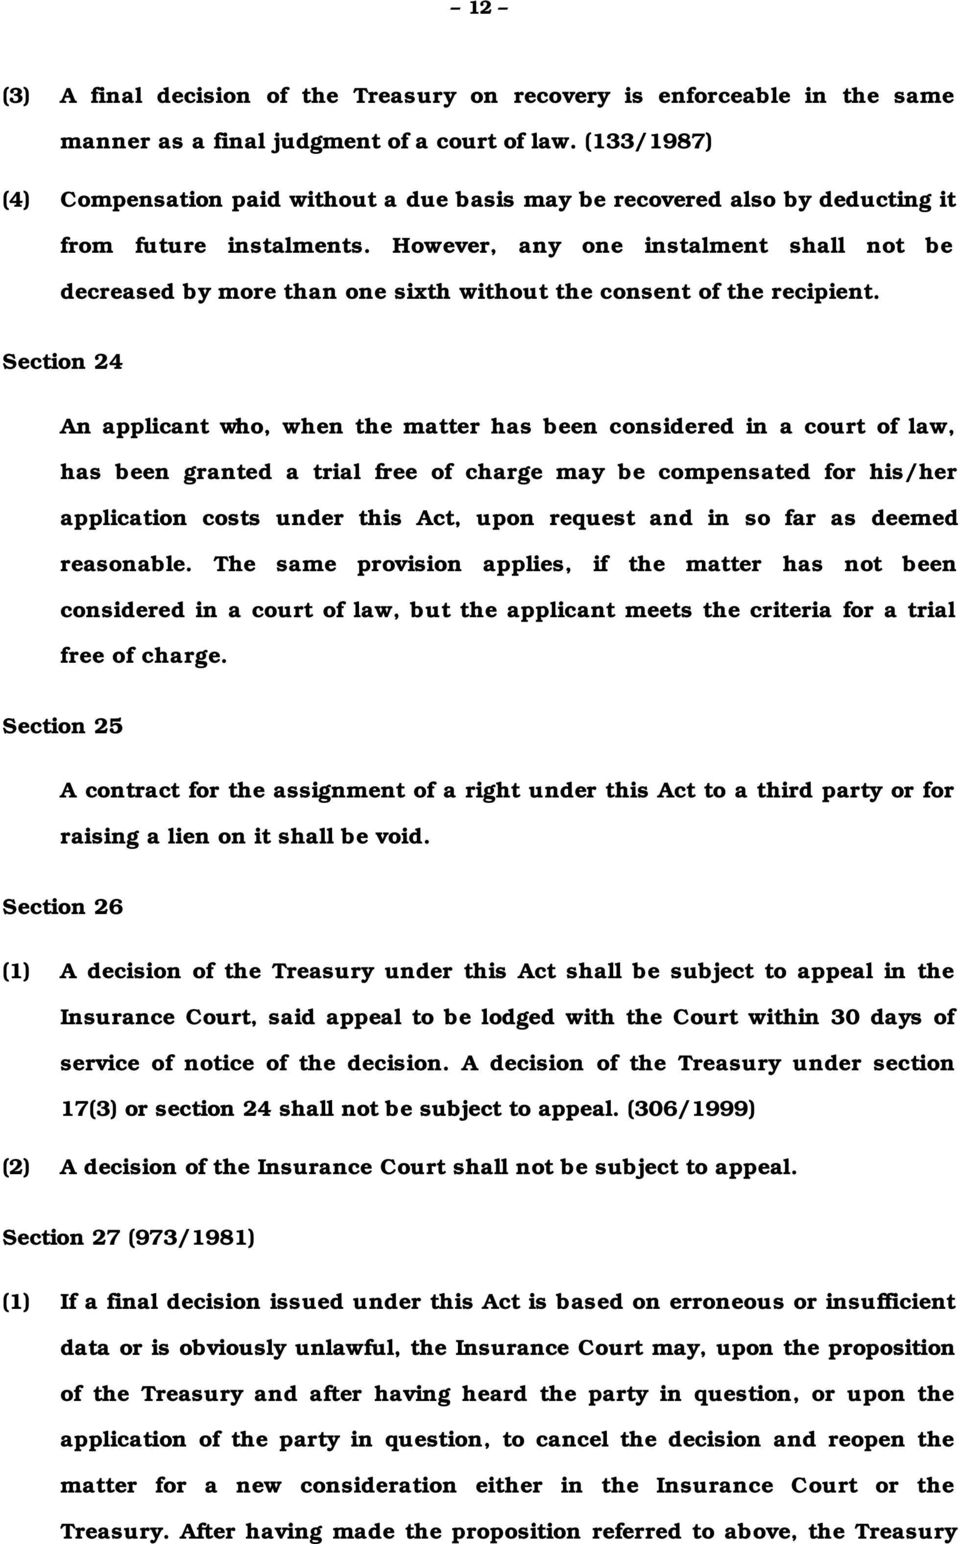 However, any one instalment shall not be decreased by more than one sixth without the consent of the recipient.